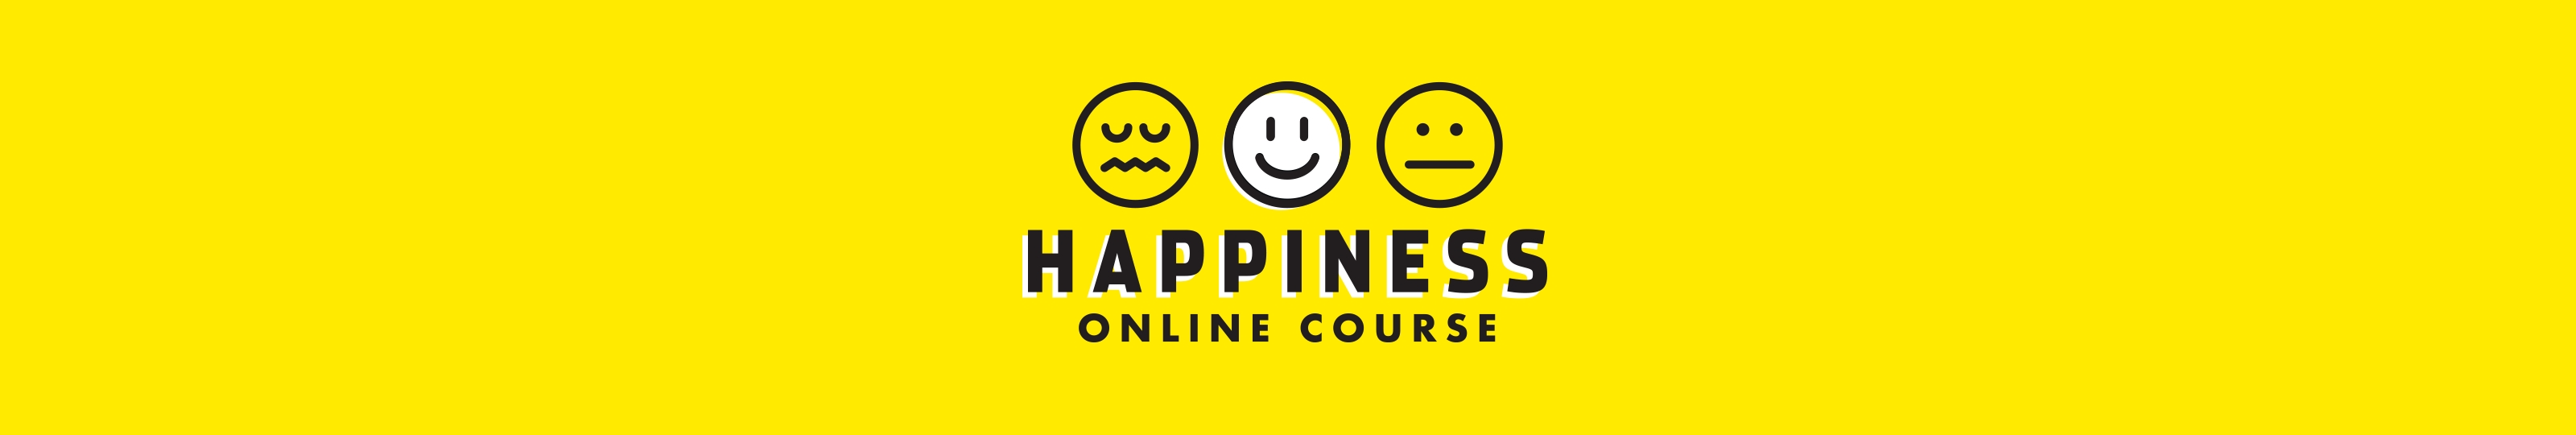 Happiness Online Course